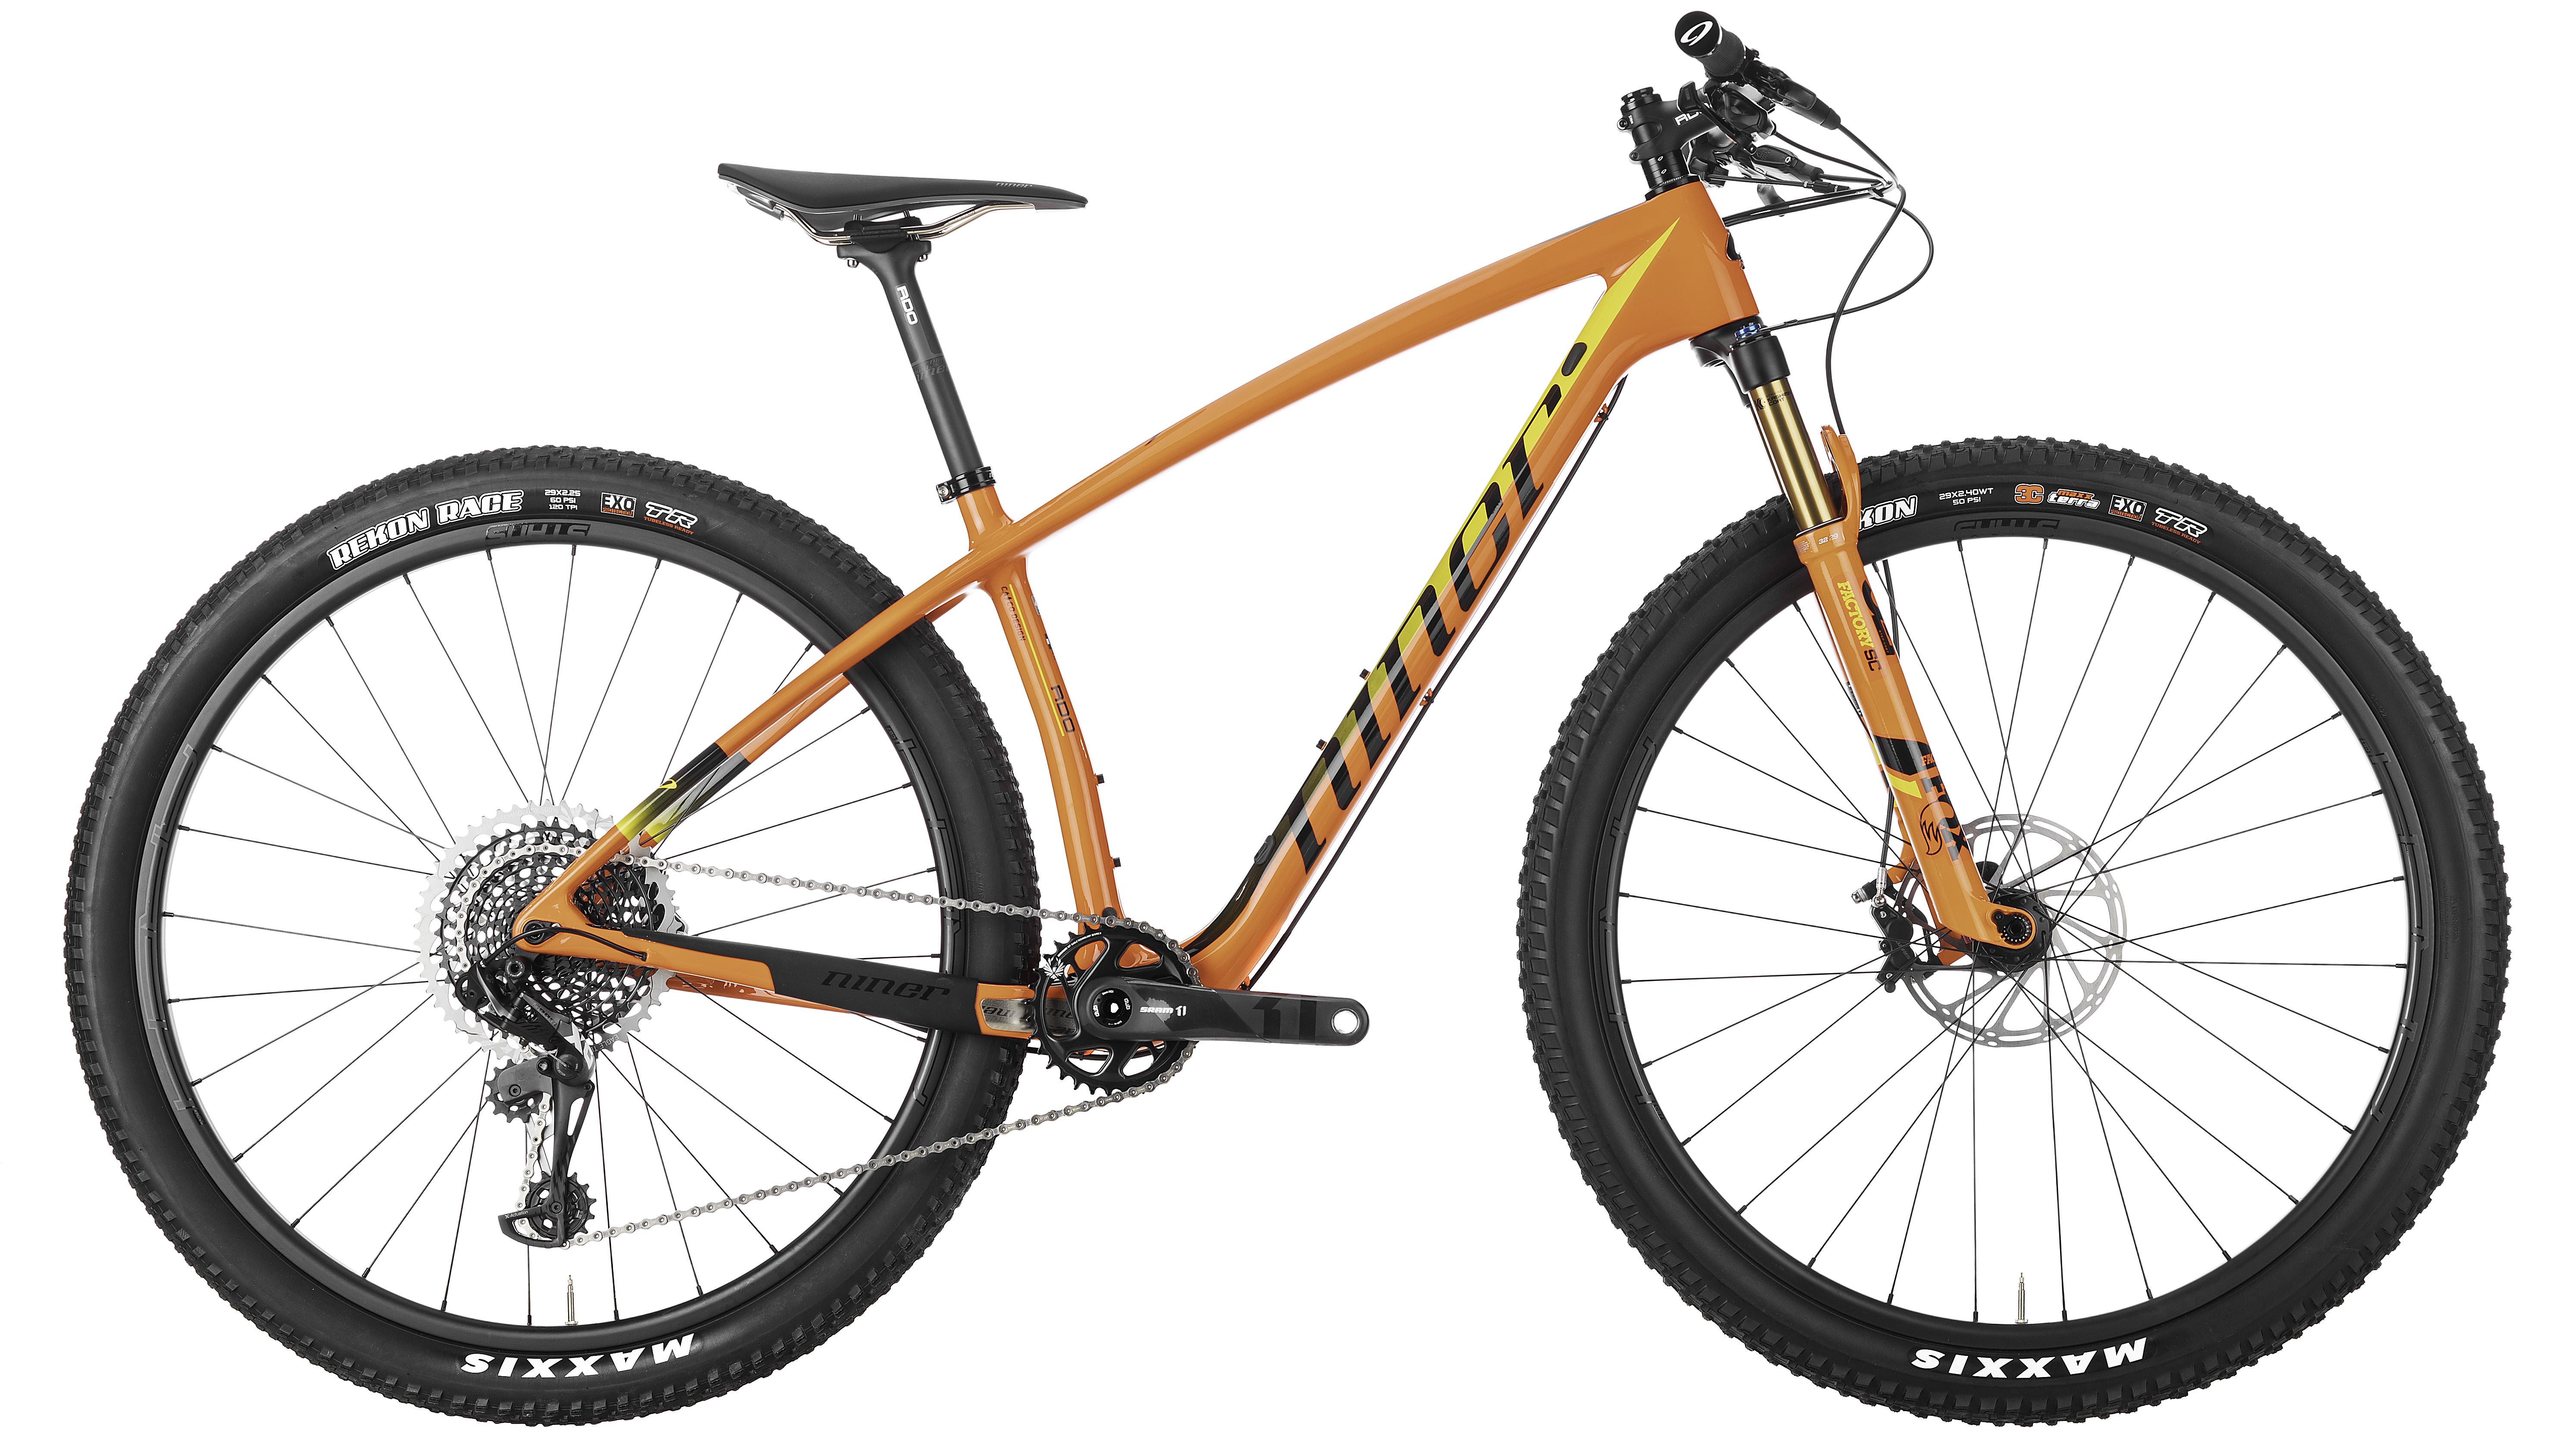 Orange colored XC hardtail race bike by Niner